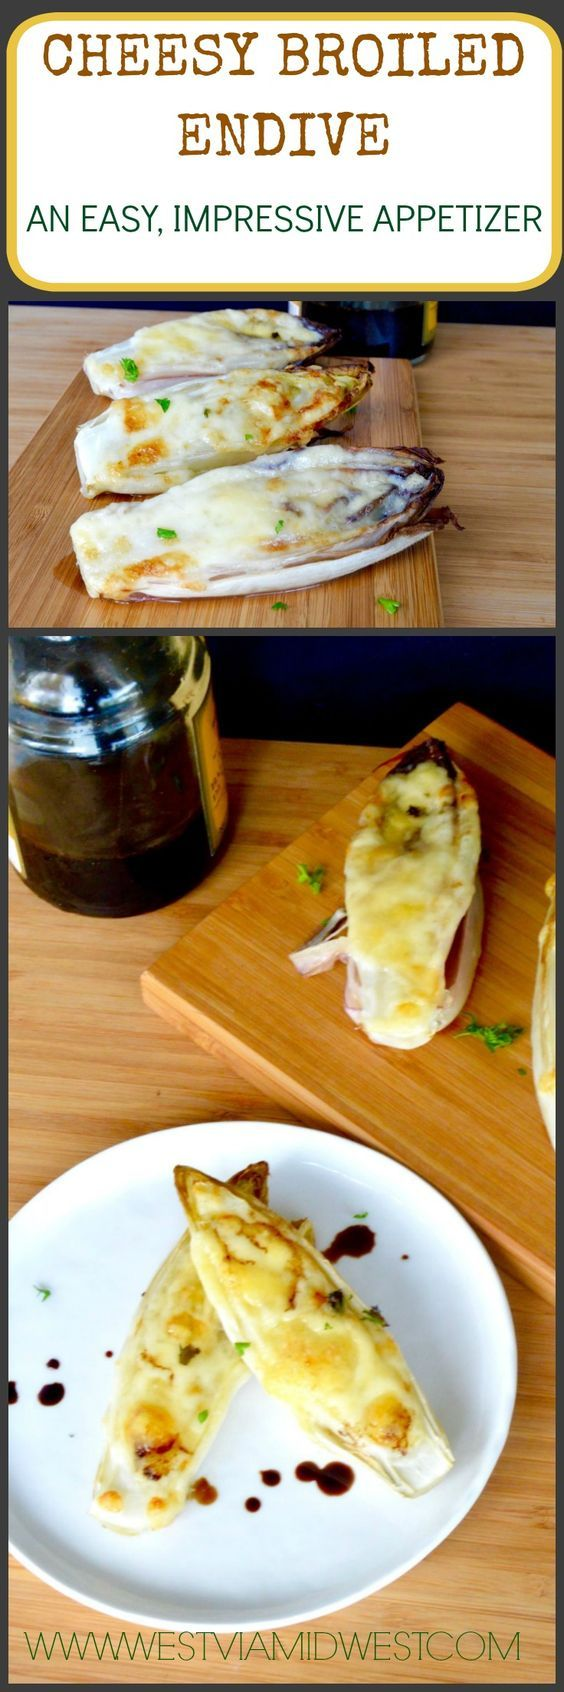 Cheesy Broiled Endive is an impressive, easy appetizer that only takes two ingredients! Topped with your favorite cheese it's deliciously savory, filling and my favorite part…. Low carb!!!